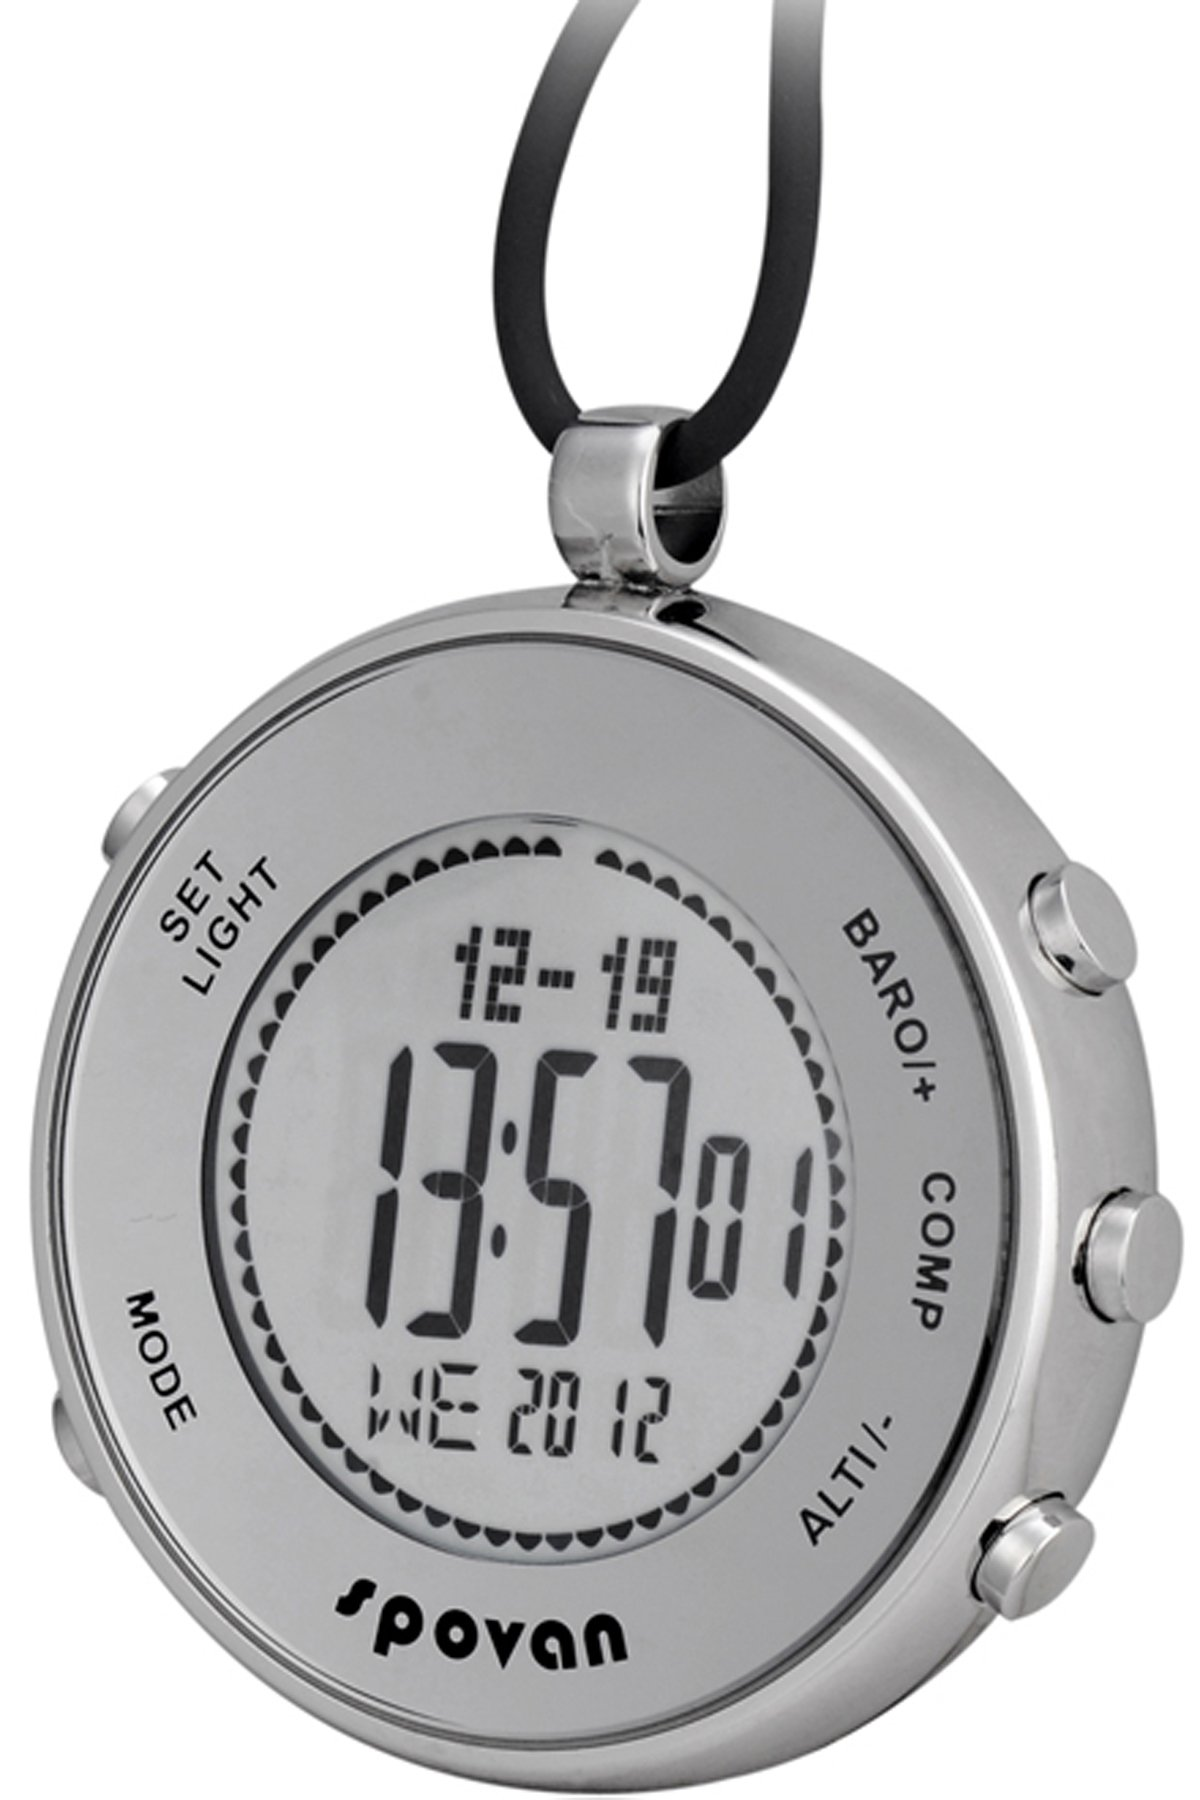 Spovan Silver Digital Pocket Watches Hiking Altimeter Barometer Compass by findtime